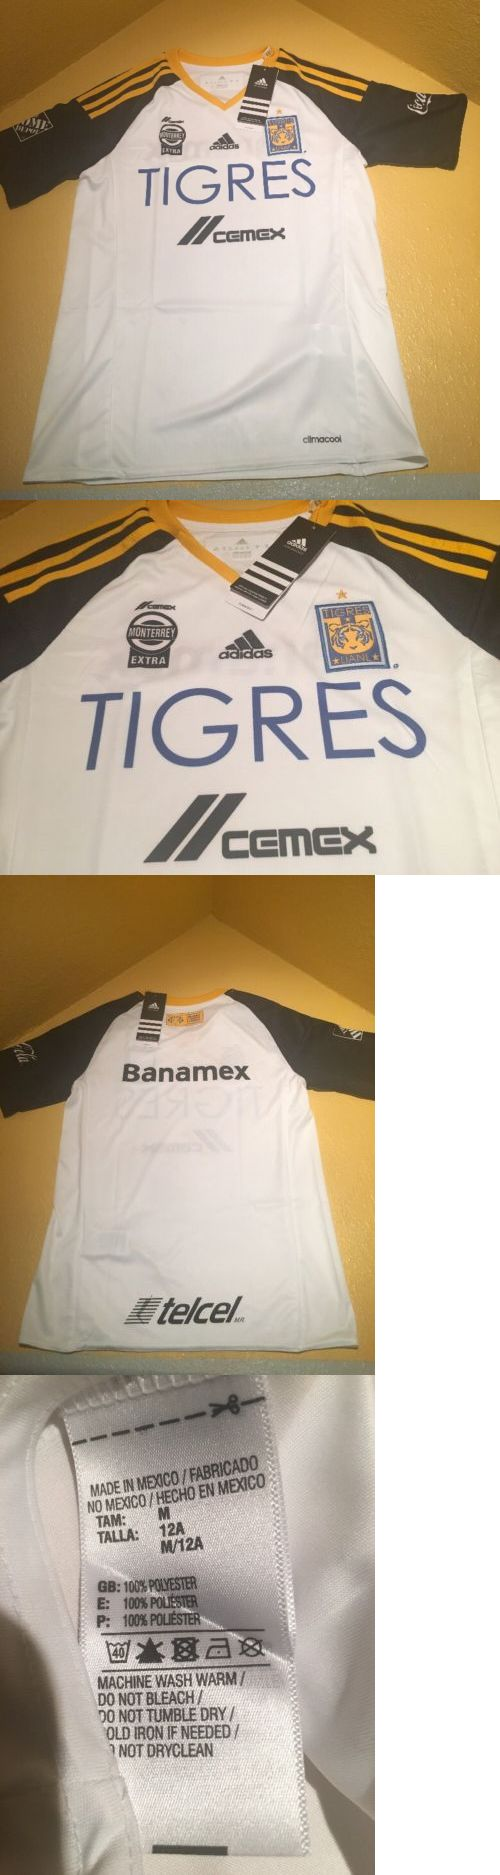 Youth 159099: Tigres Uanl Tercer Jersey 2016 Original Adidas Niño Youth Size M -> BUY IT NOW ONLY: $49.95 on eBay!